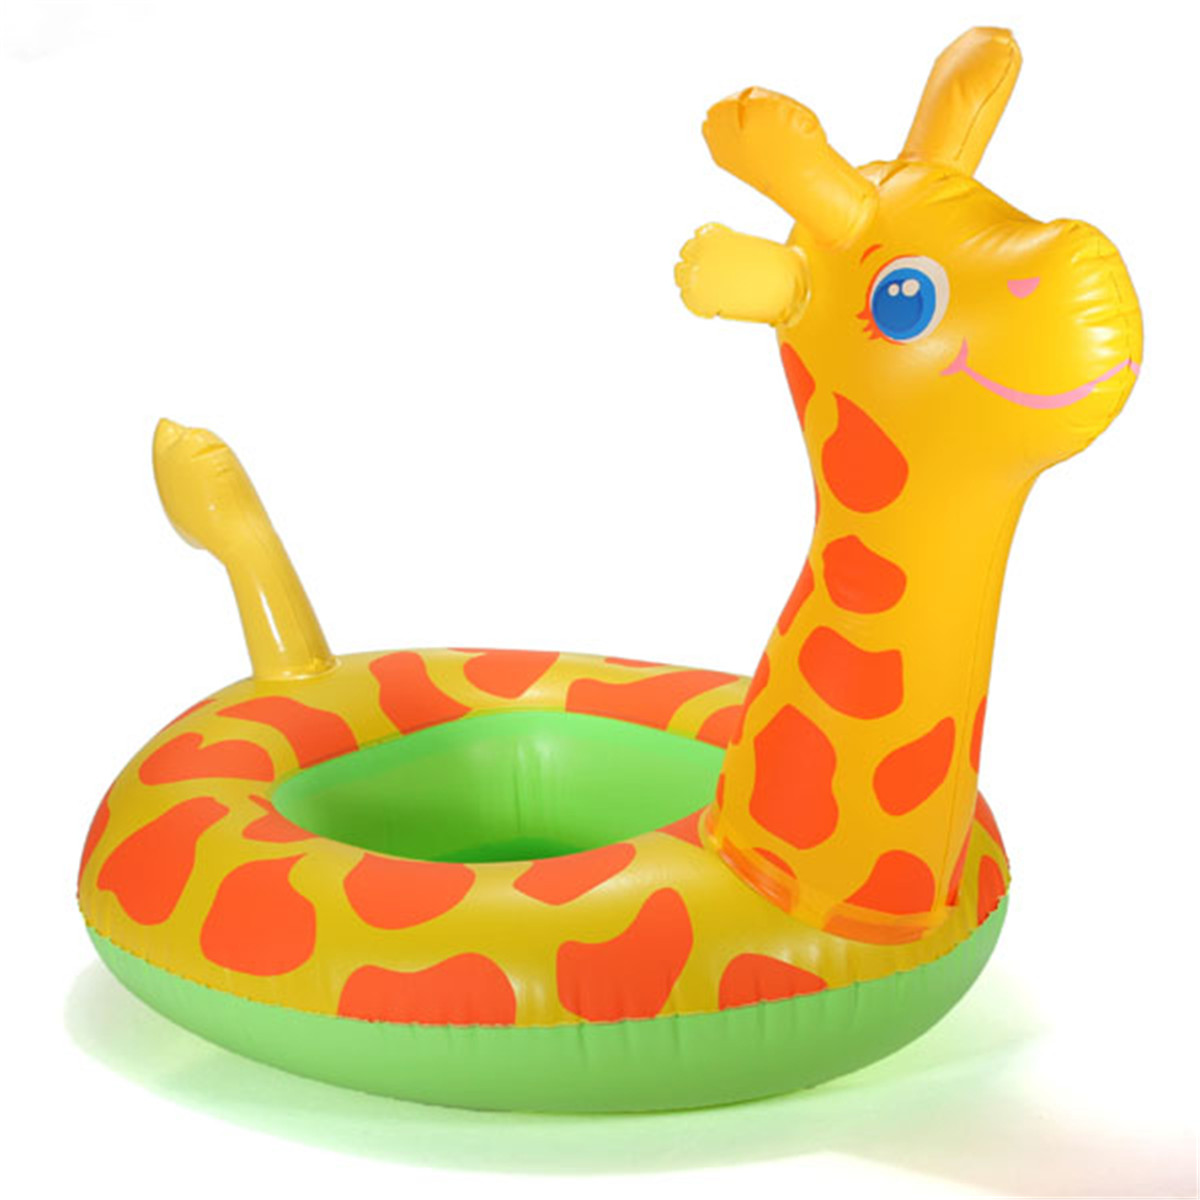 High quality Arrival Portable Giraffe Shape Baby Child Inflatable Water Swimming Pool Raft Chair Seat Float Ring For Kids Flexib(China (Mainland))